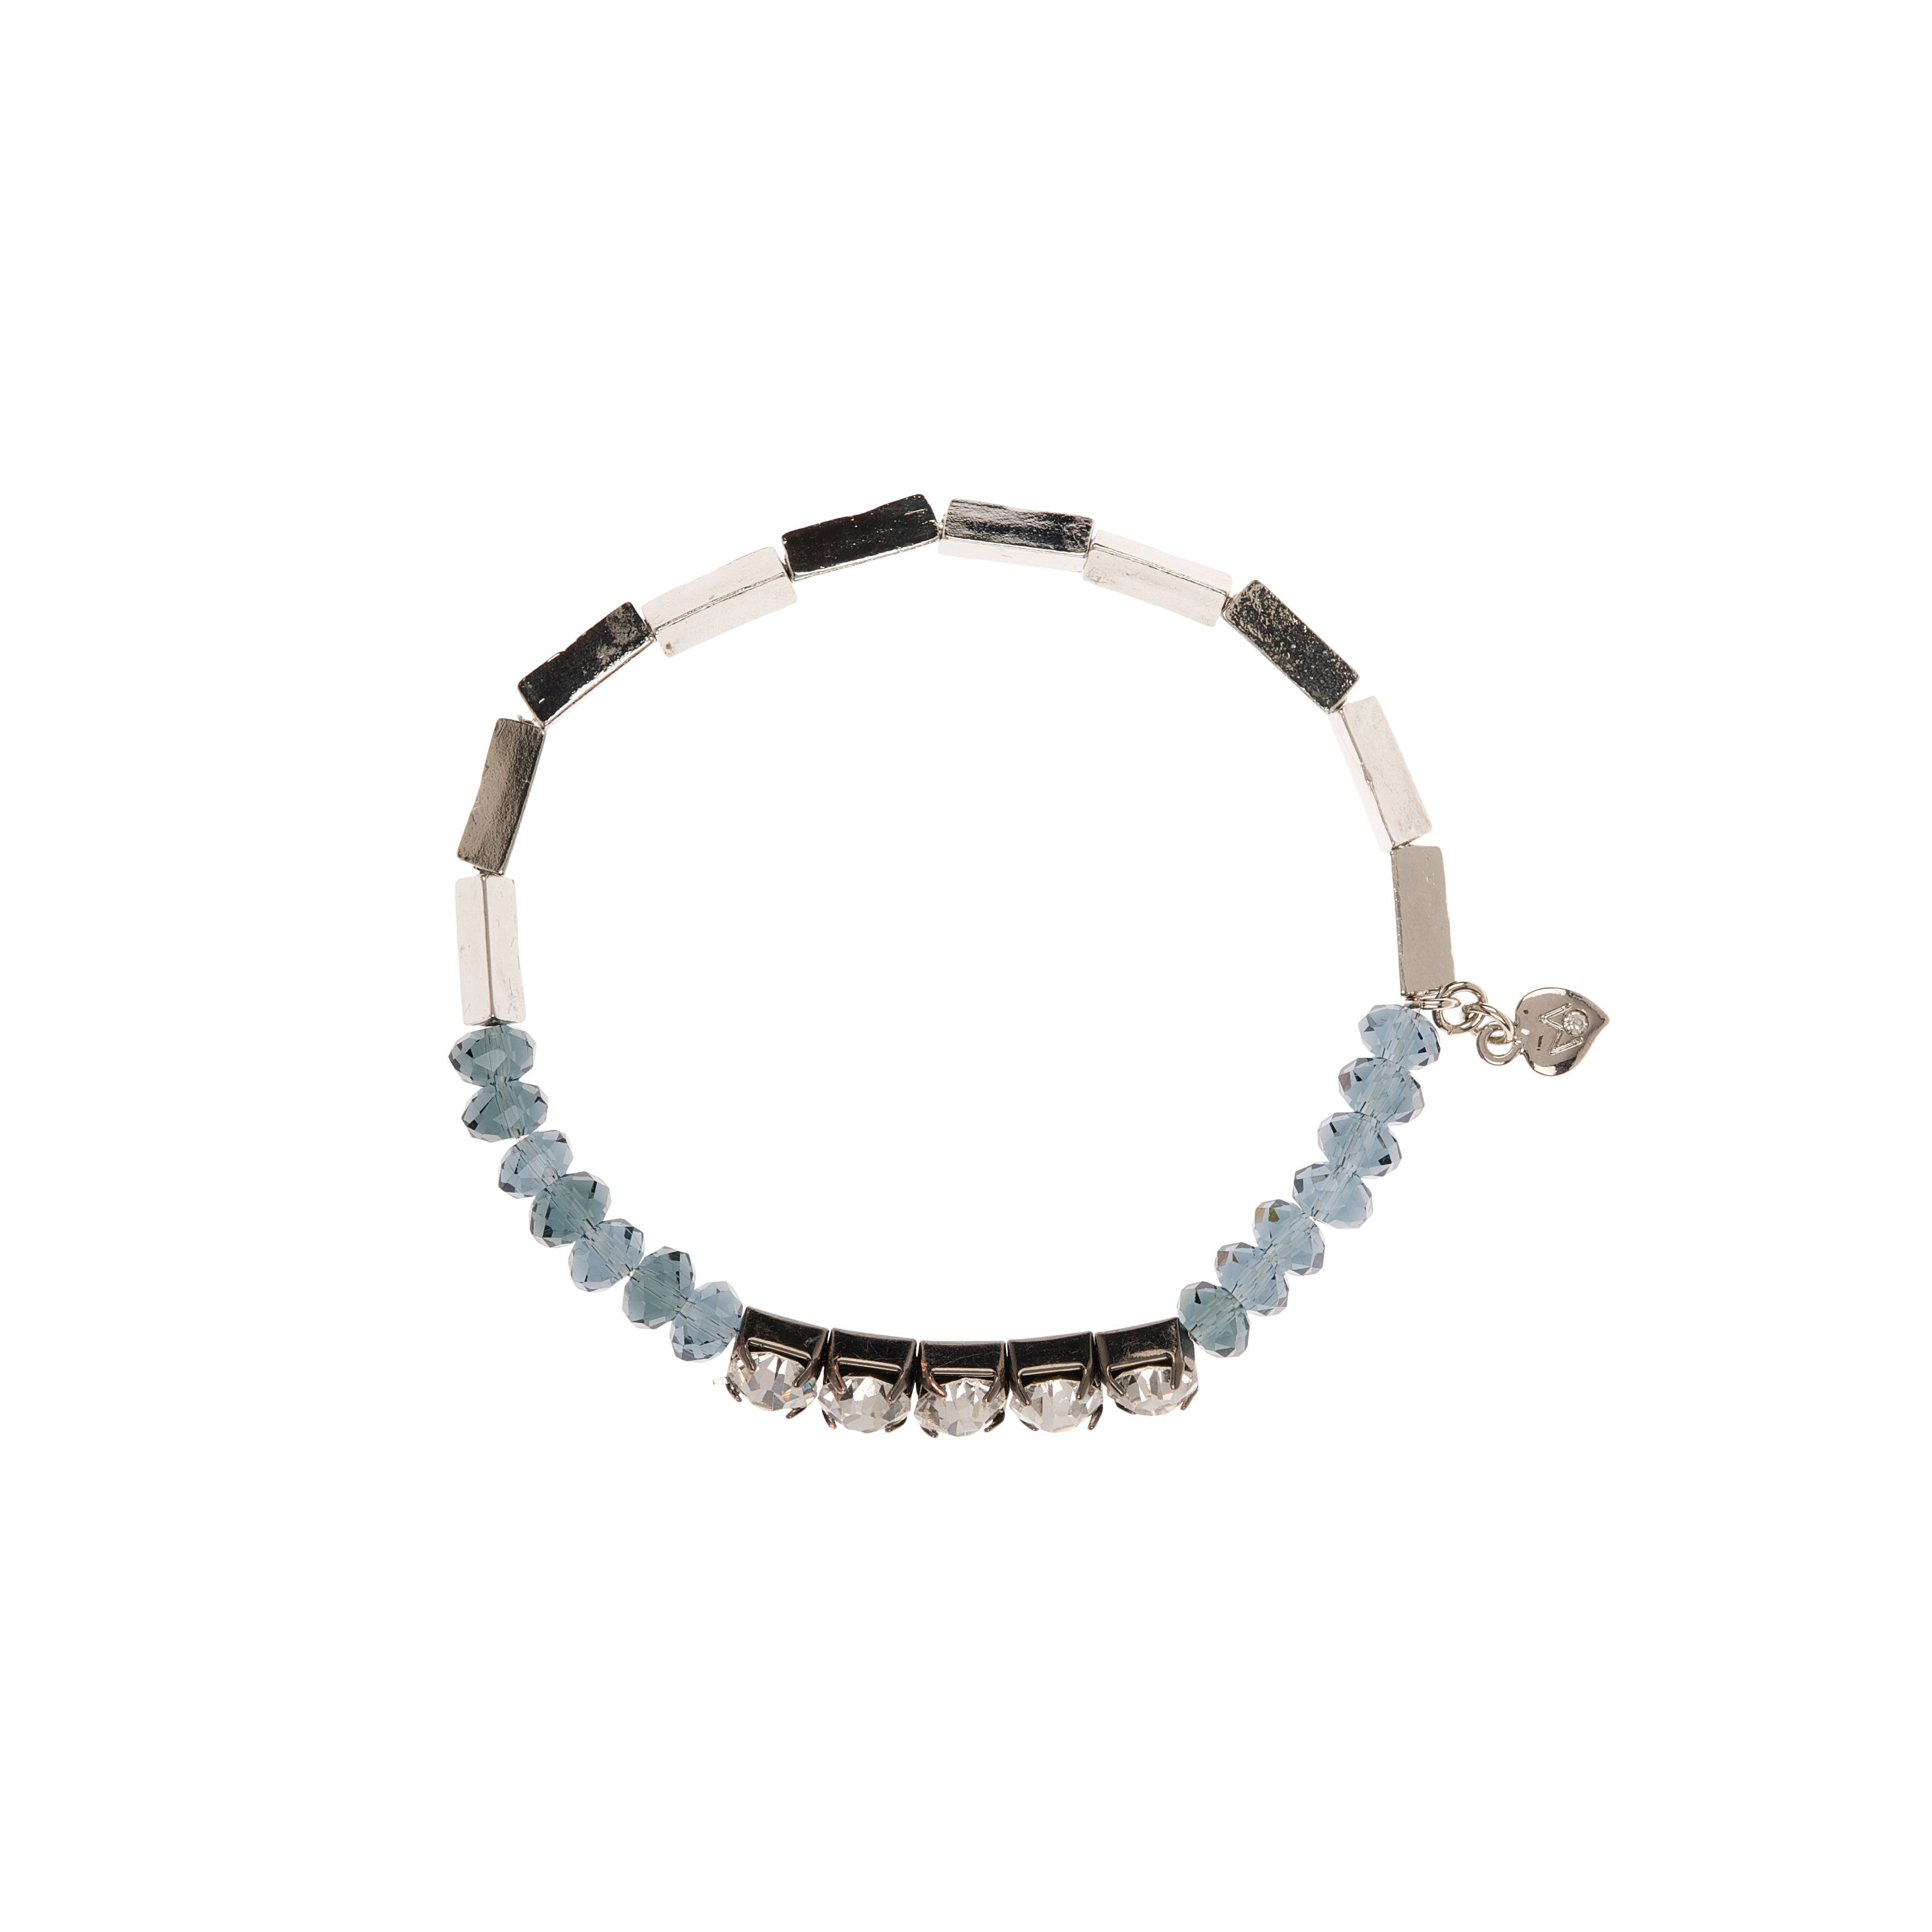 Moonlight crystal and beads stretch bracelet